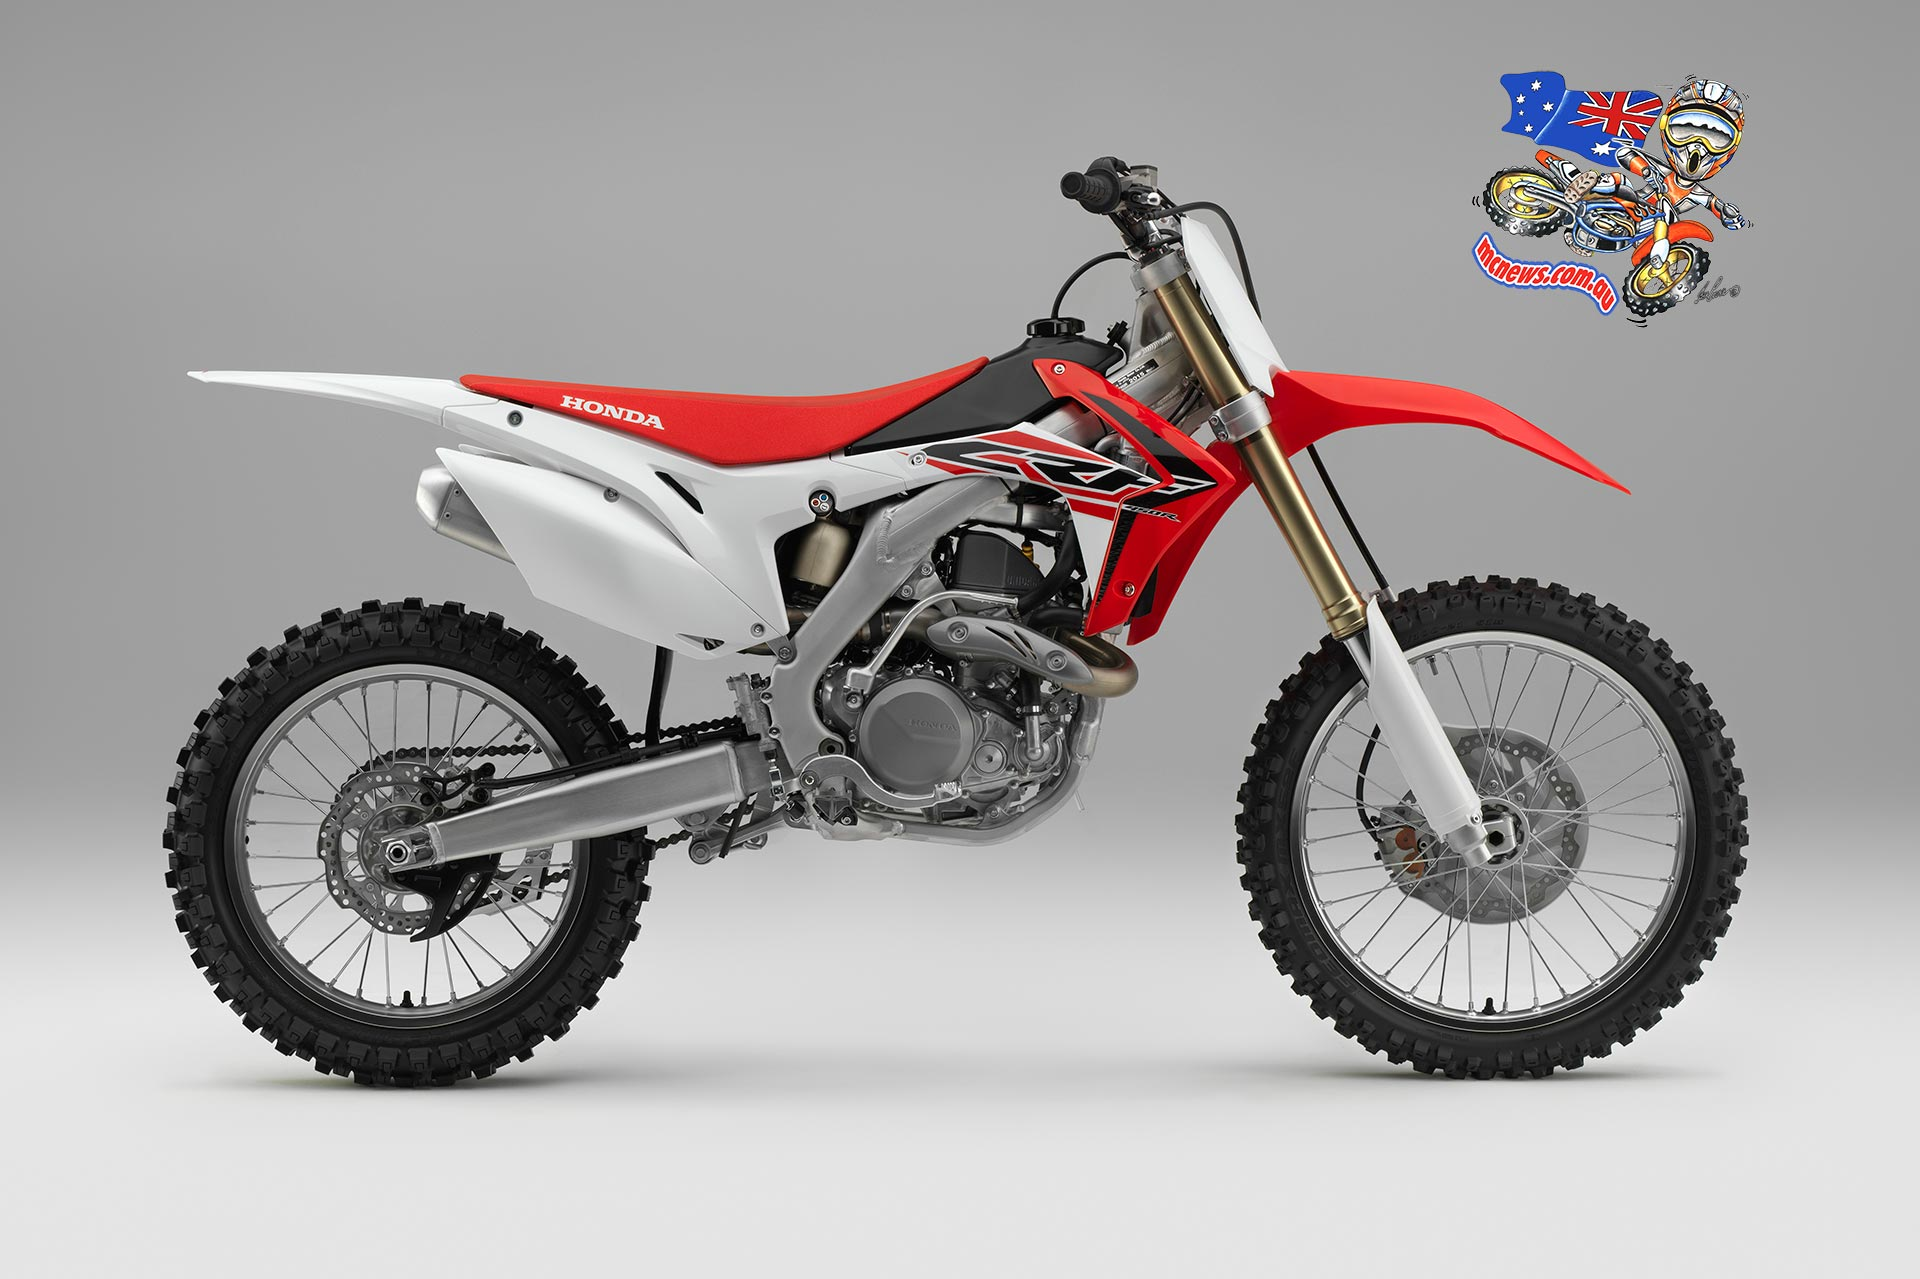 The 2014 model featured an array of detail changes to both suspension and engine performance, driven by race experience. For the 2015 season Honda's development engineers have chosen to make small changes that make a big difference, and their new CRF450R – out of the crate – is about as close as it's possible to get to the feel of a Factory MX1 machine.